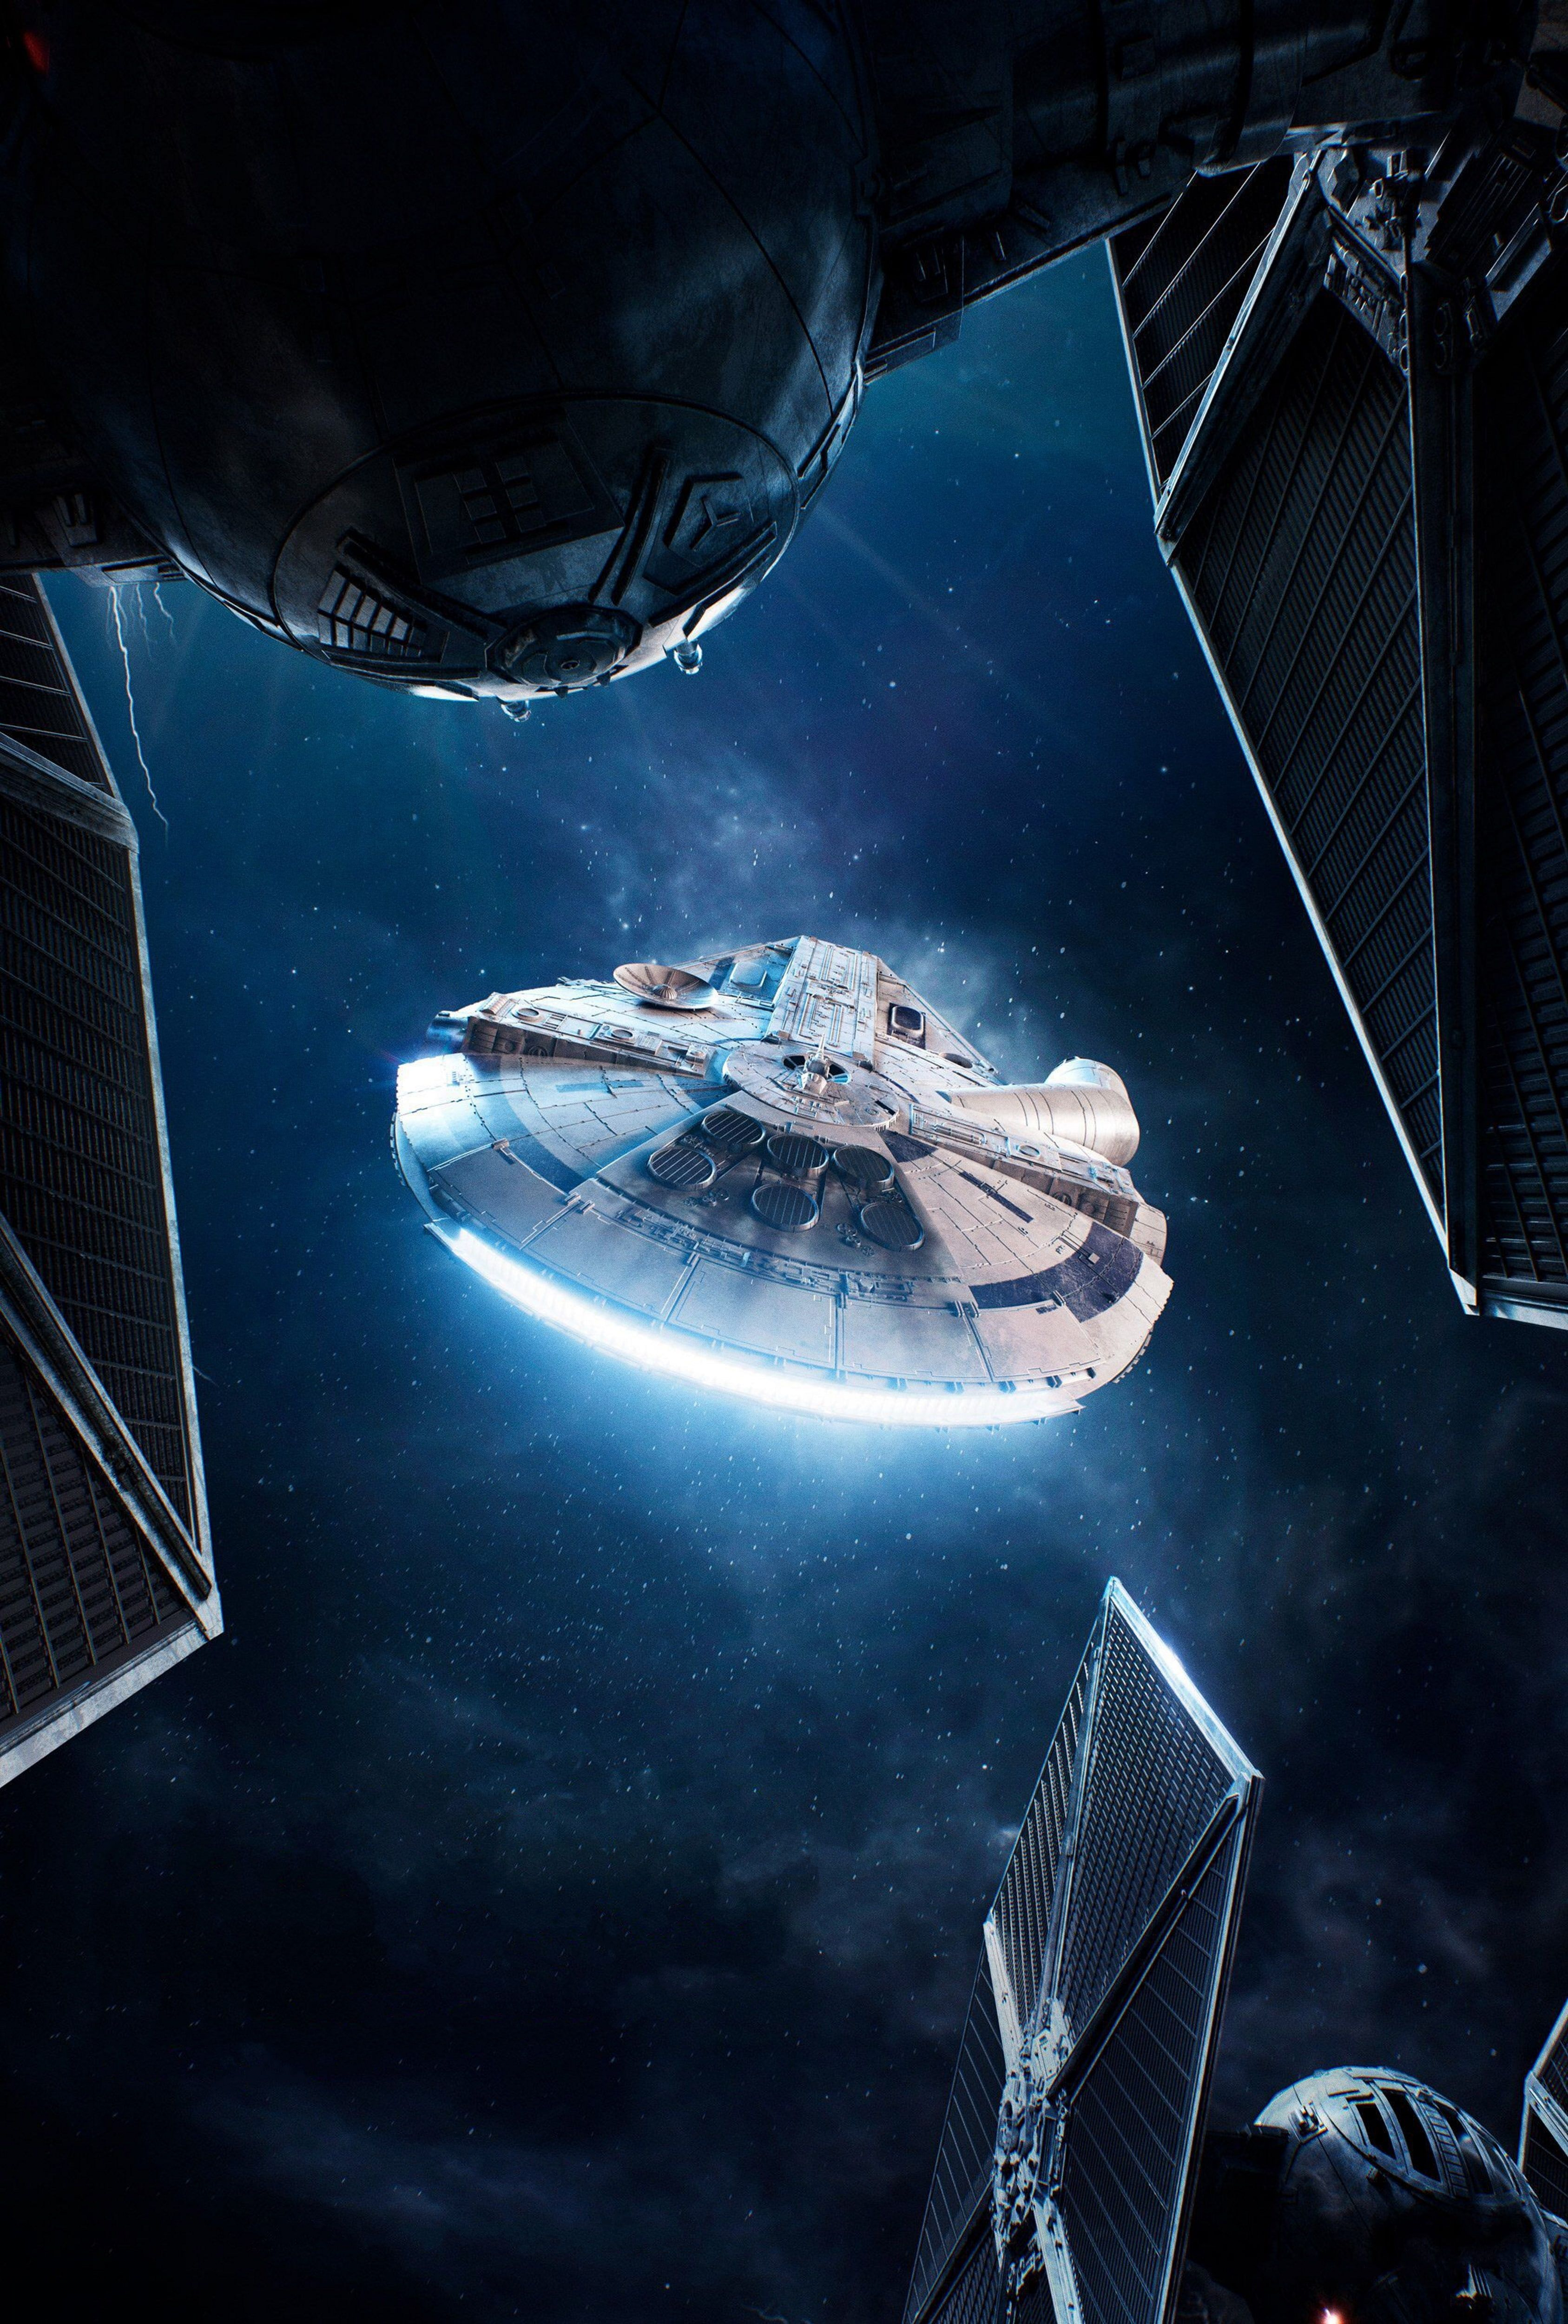 Spaceship 4k Solo A Star Wars Story Millennium Falcon 4k Wallpaper Hdwallpaper Desktop In 2020 Star Wars Wallpaper Star Wars Spaceships Star Wars Background